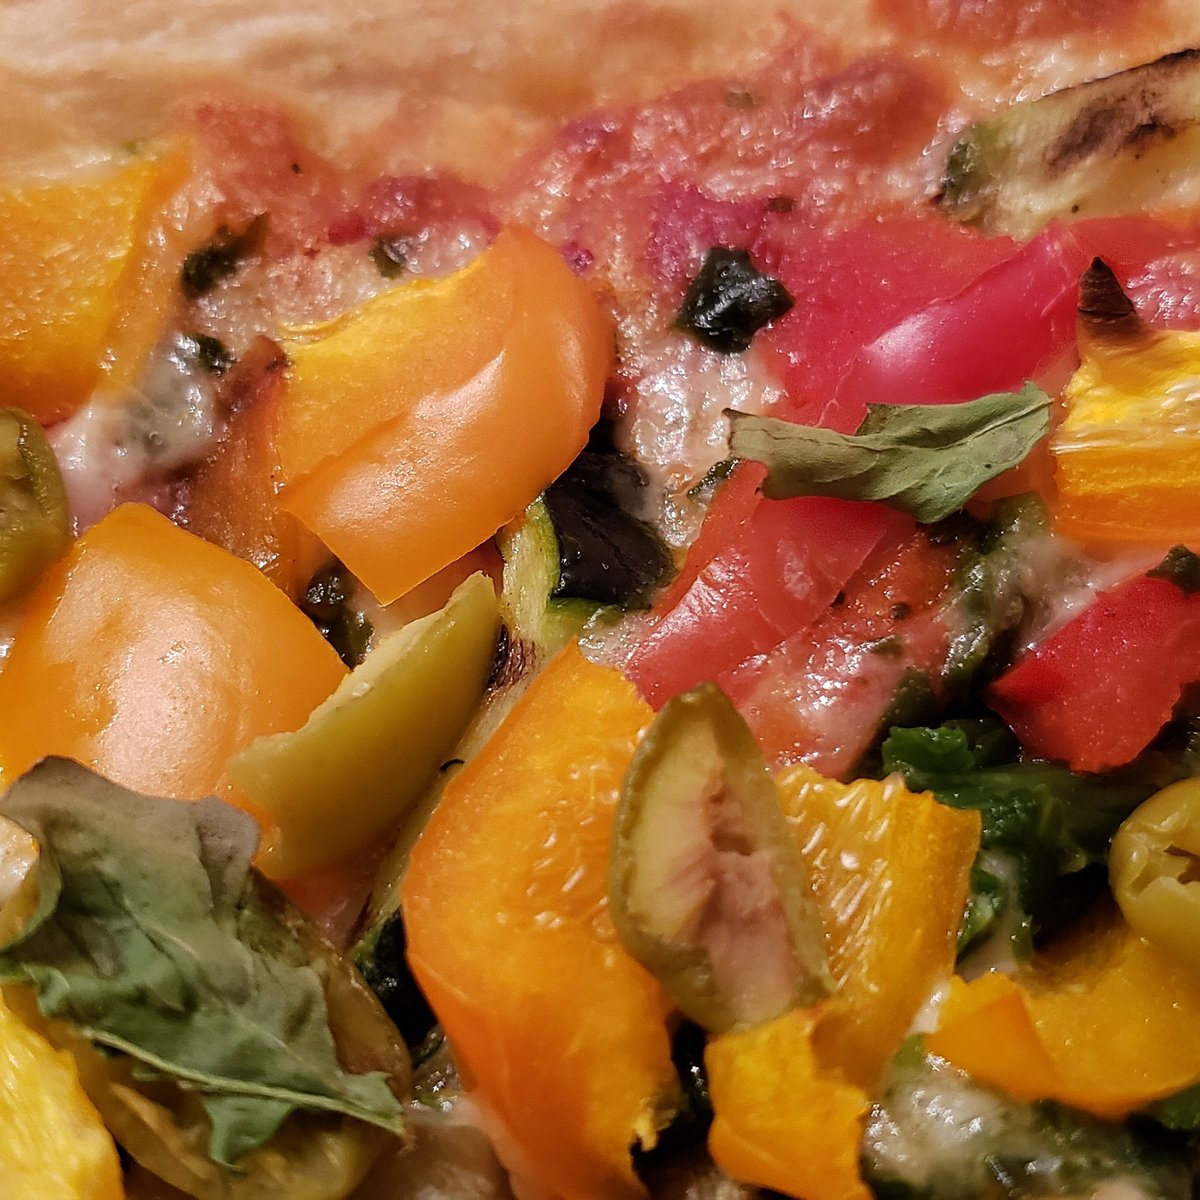 Living Fresh Foods enjoying Organic Pizza with fresh Peppers, Olives and the Indoor Grown Arugula.  https://t.co/KAoyA2kezp  #growyourownfoods #growmyownfood #growlights #growlight #growityourself #organicfoods #pizza #pizzalover #pizzatime #dinnerideas #dinnerathome https://t.co/SaEA7ZFFbB